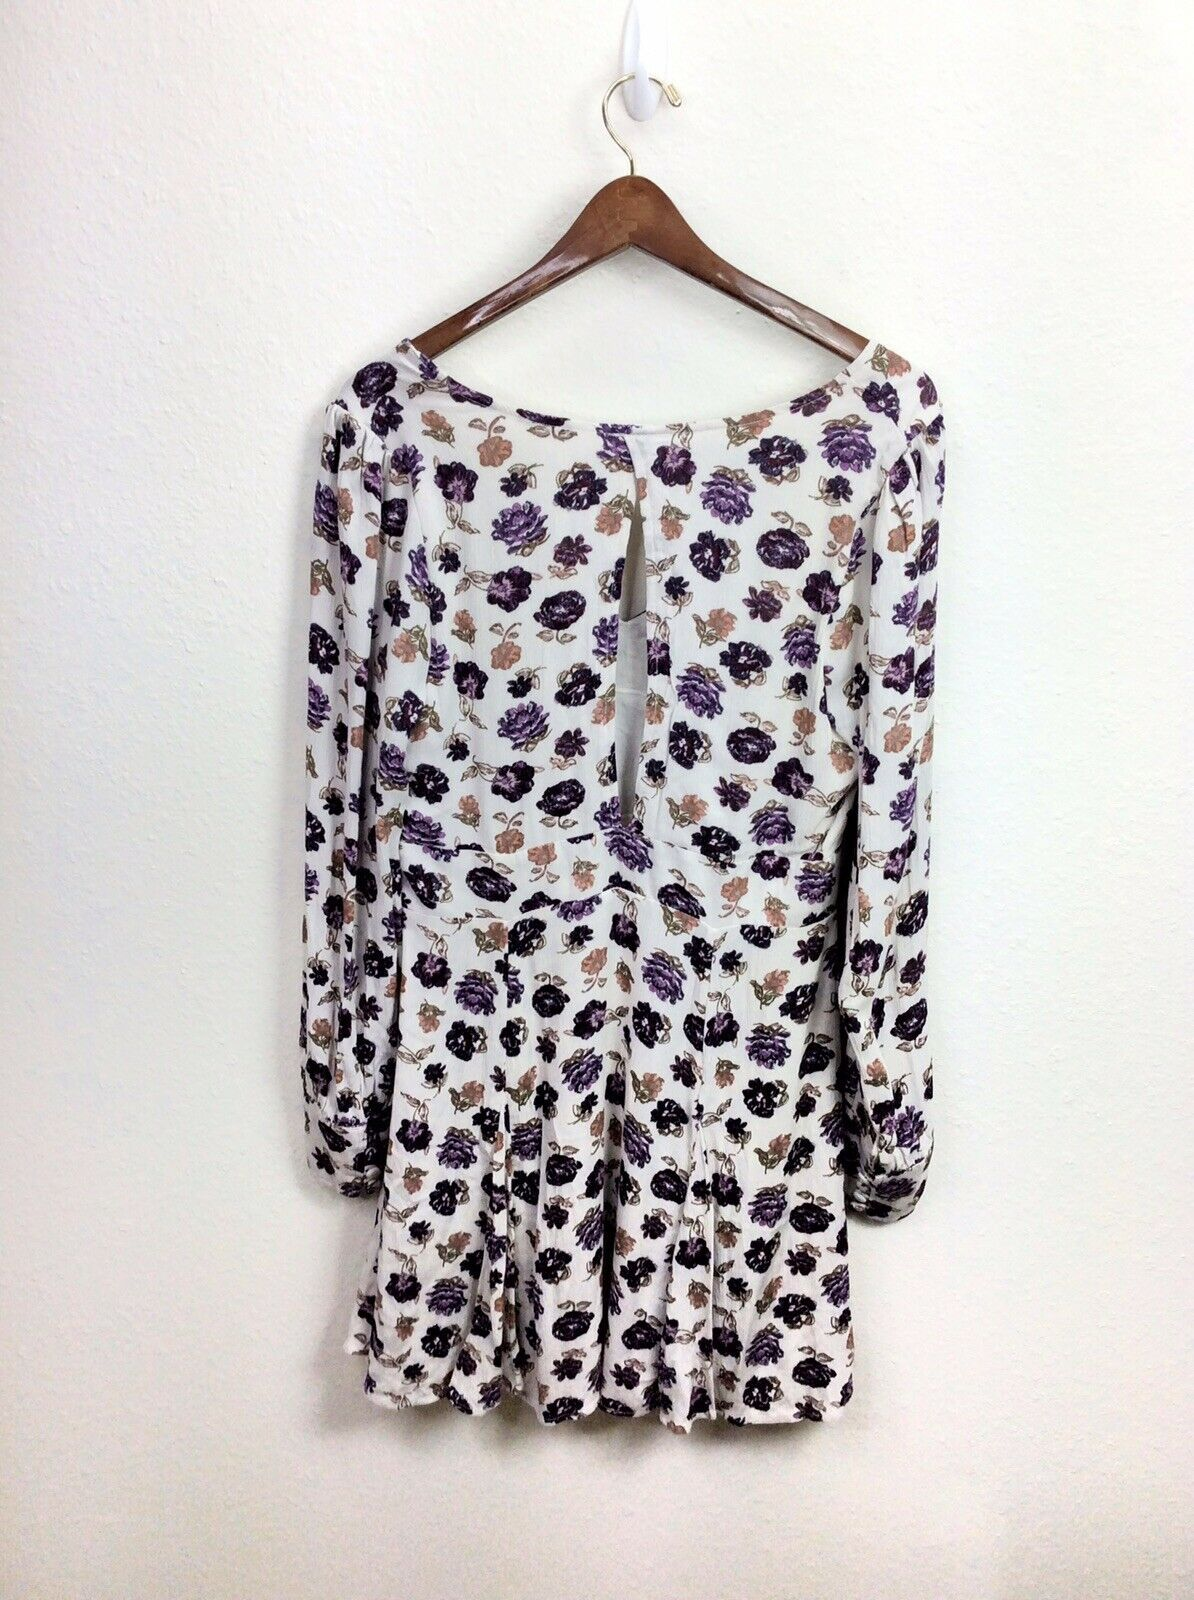 Free People About a Girl Fit And Flare Ivory Purple Floral Dress Size 12